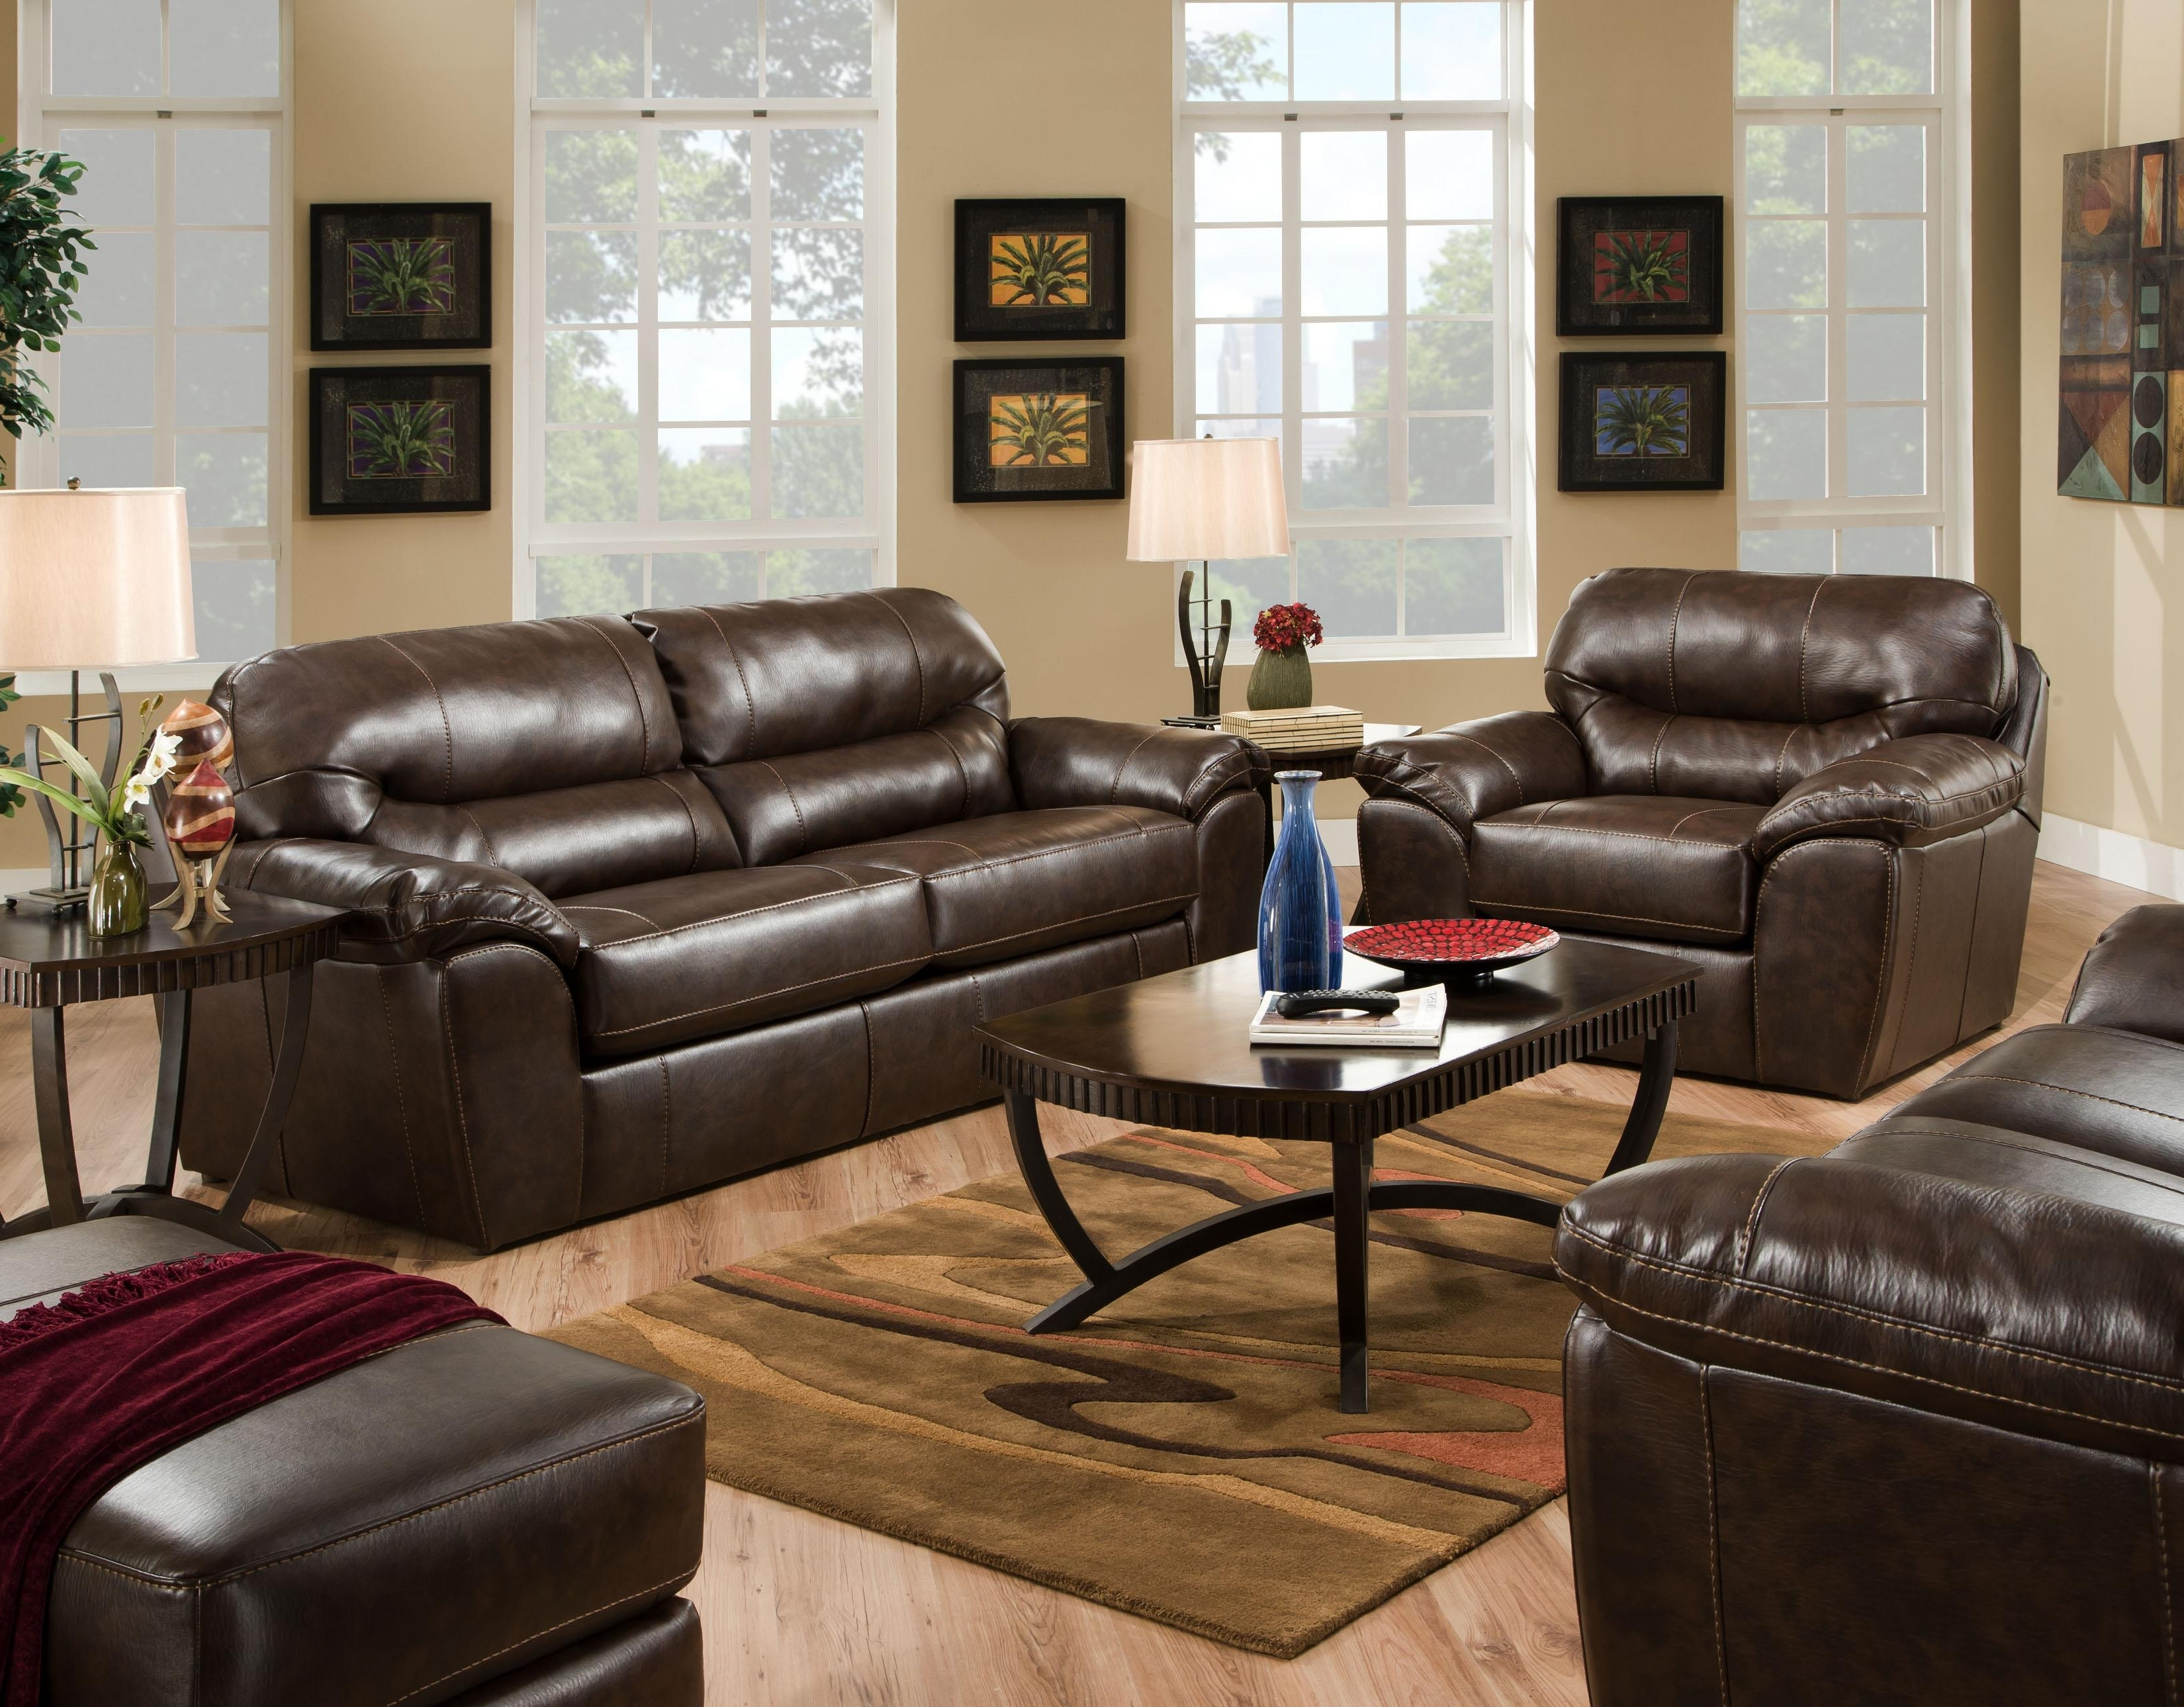 Favorite Casual And Comfortable Faux Leather Sofajackson Furniture For Casual Sofas And Chairs (View 7 of 20)